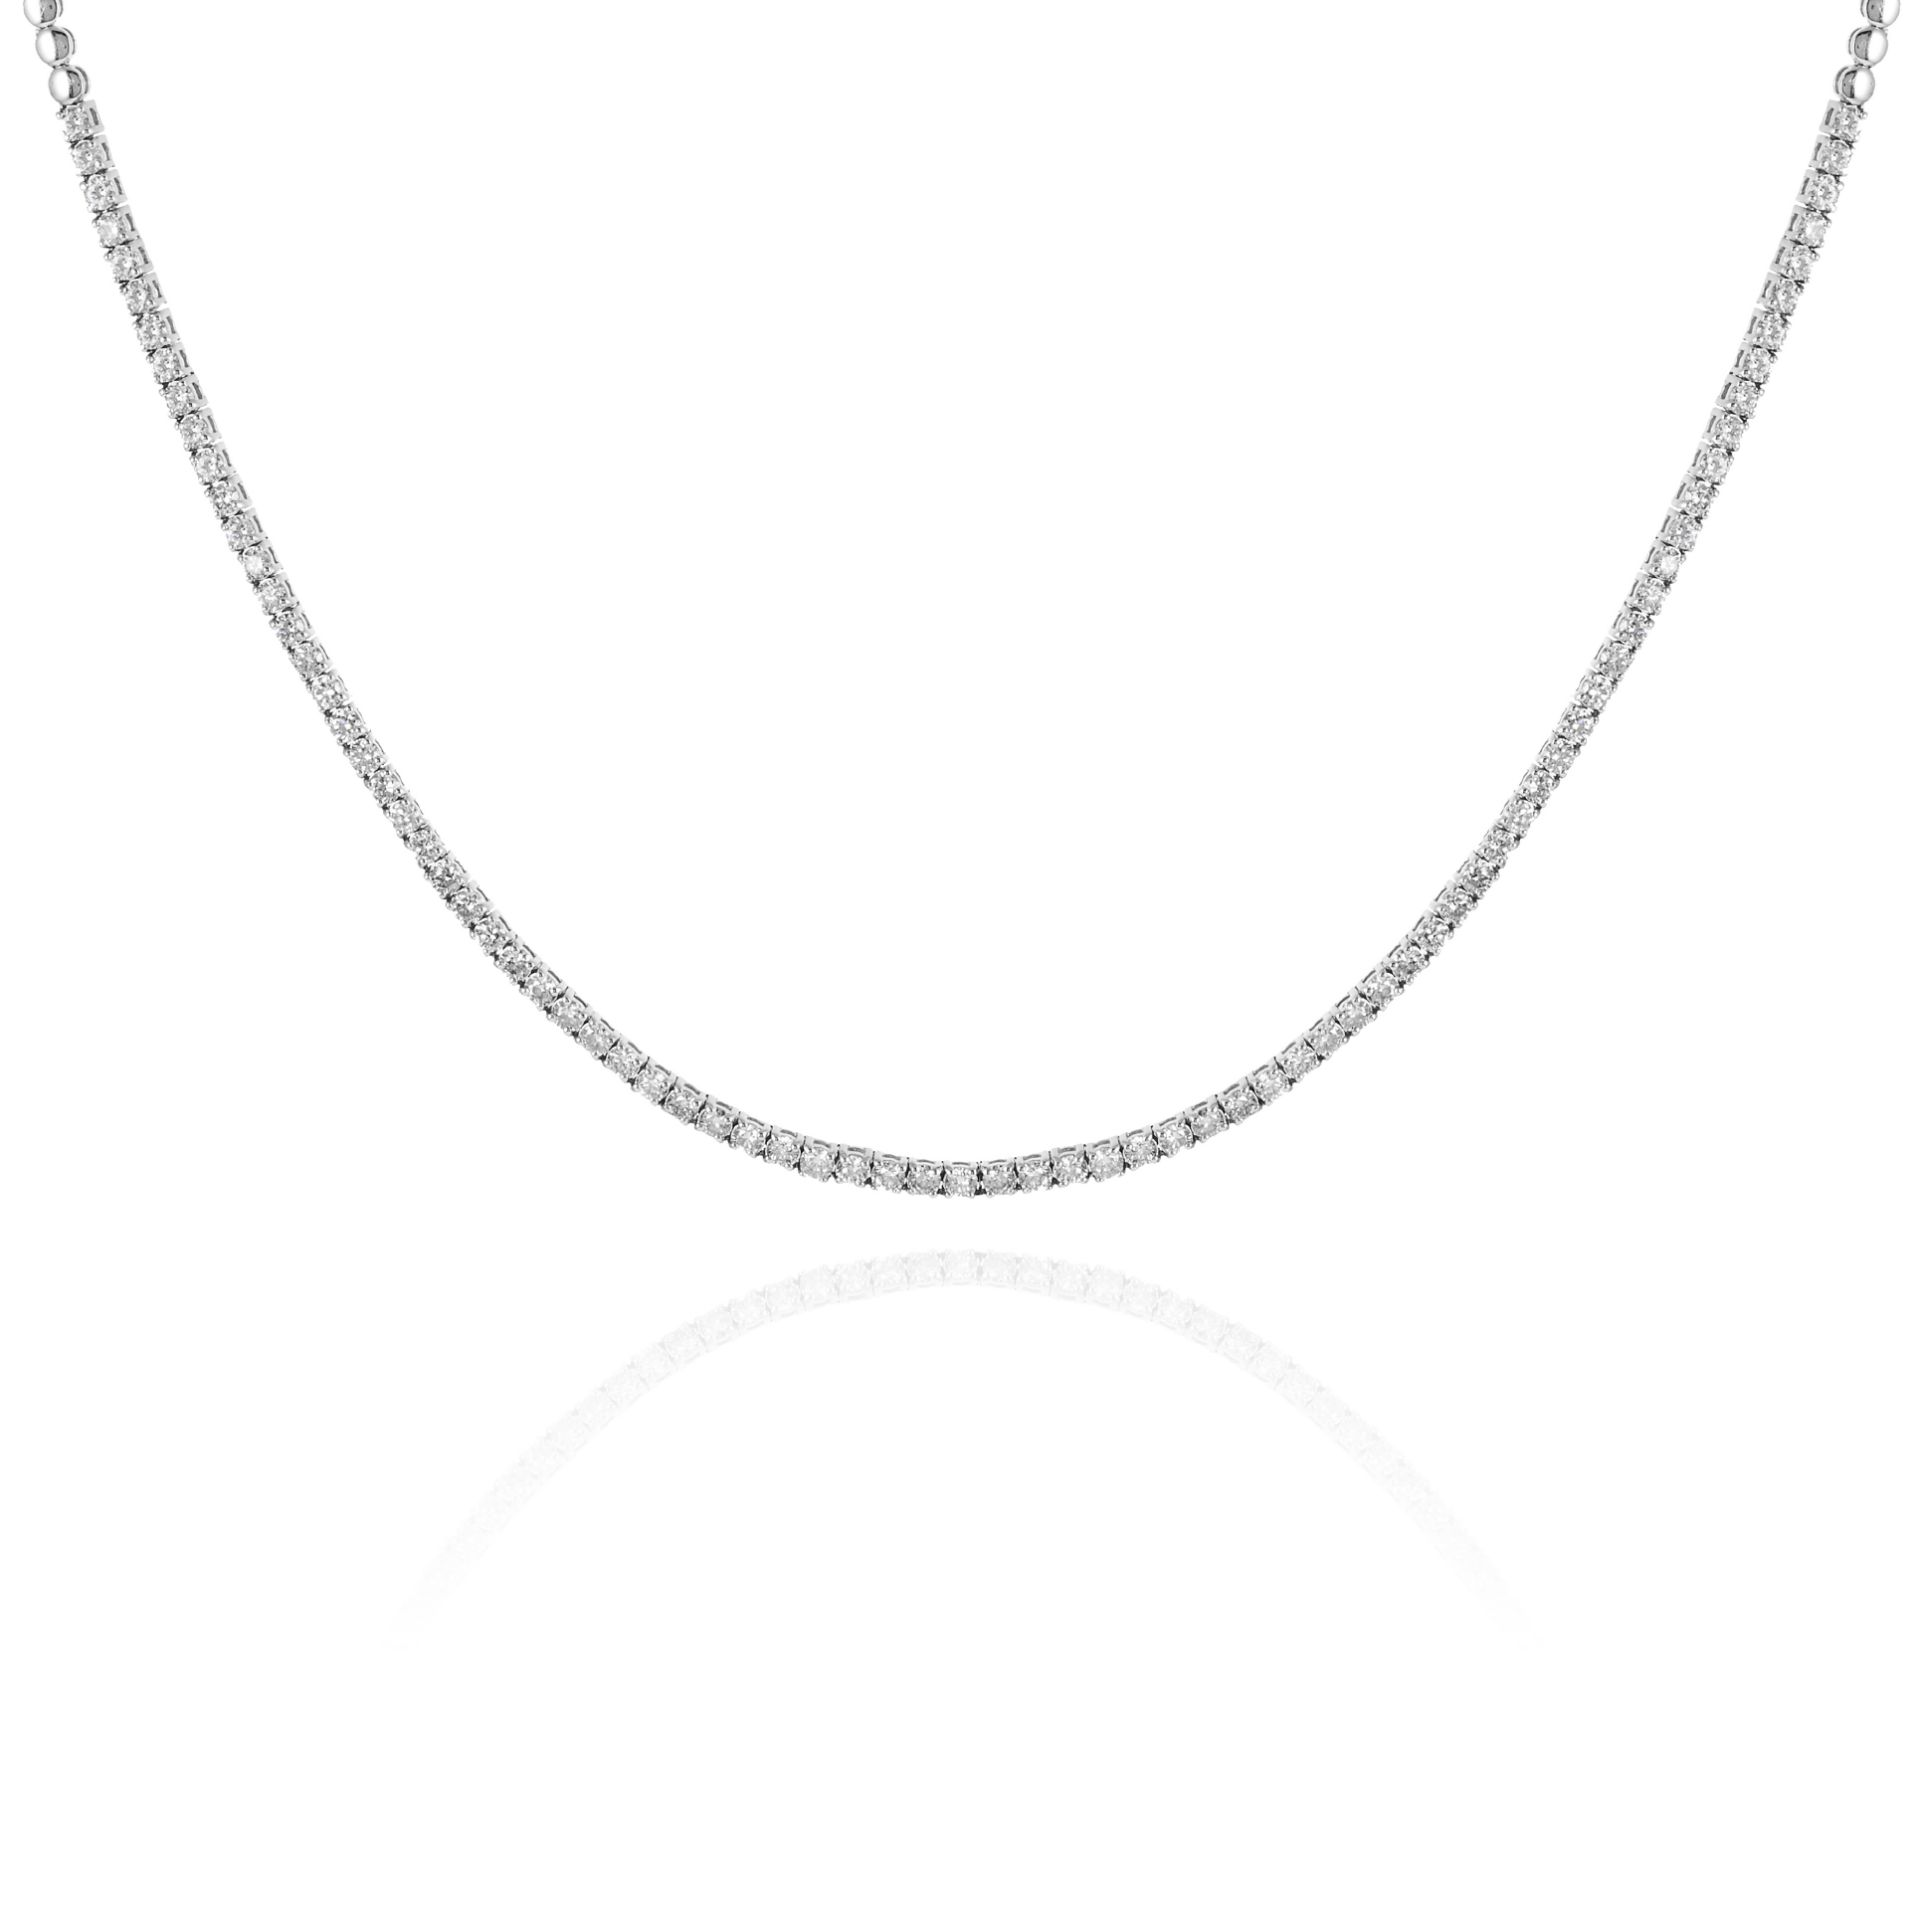 A 3.80 CARAT DIAMOND LINE NECKLACE in 18ct white gold, set with round cut diamonds totalling